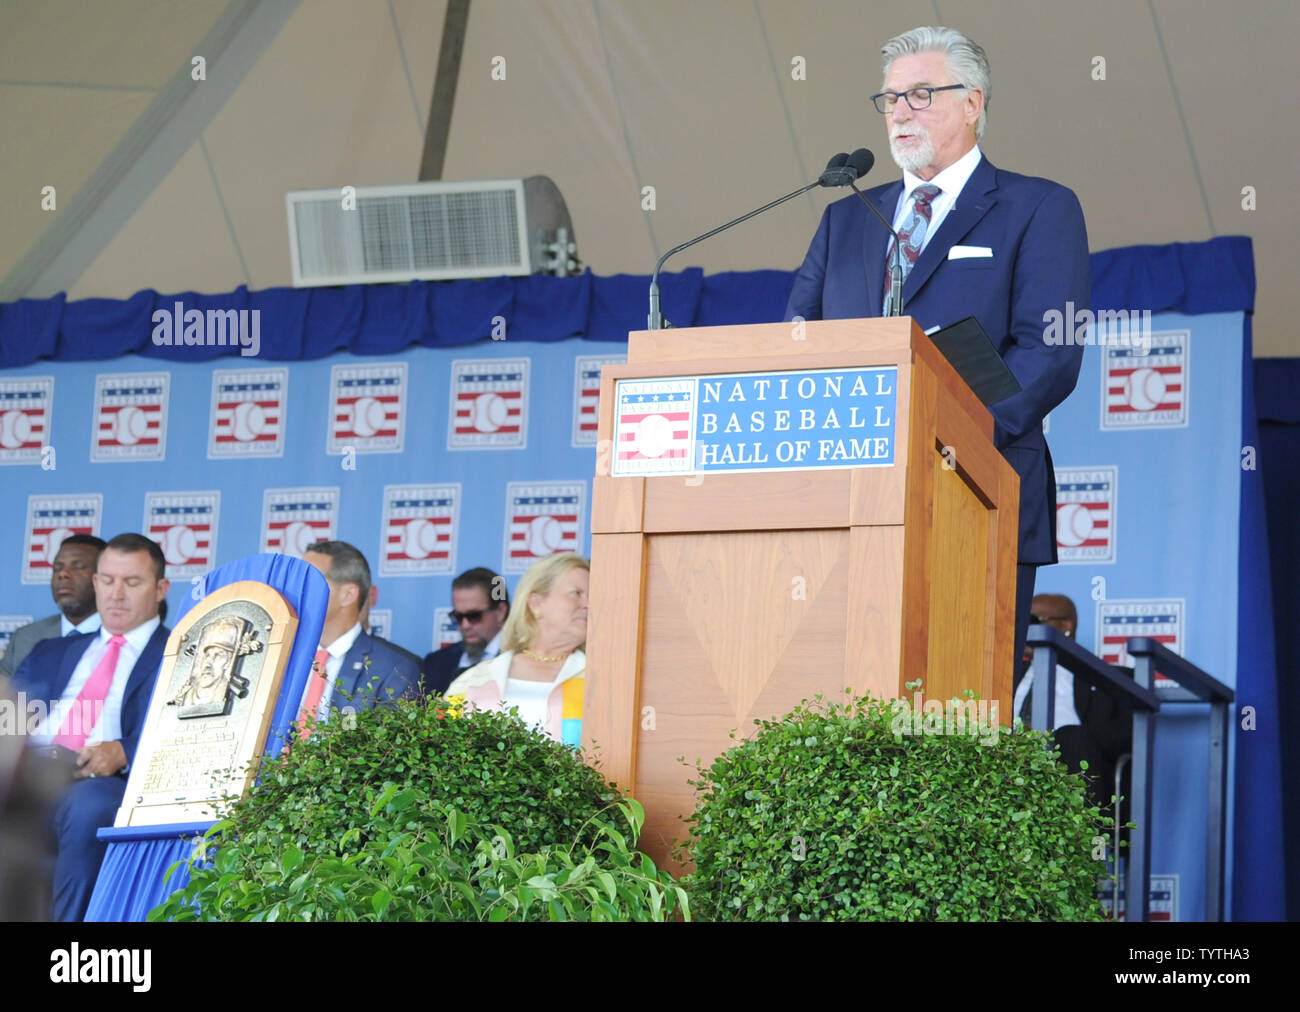 Jack Morris delivers his Baseball Hall of Fame induction speech at the Clark Sports Center in Cooperstown, NY on July 29, 2018.  A record 60 Hall of Famers are scheduled to be in Central New York to honor Vladimir Guerrero, Trevor Hoffman, Chipper Jones, Jack Morris, Jim Thome and Alan Trammell at the National Baseball Hall of Fame and Museum during Hall of Fame Weekend on July 27-30.     Photo by George Napolitano/UPI - Stock Image